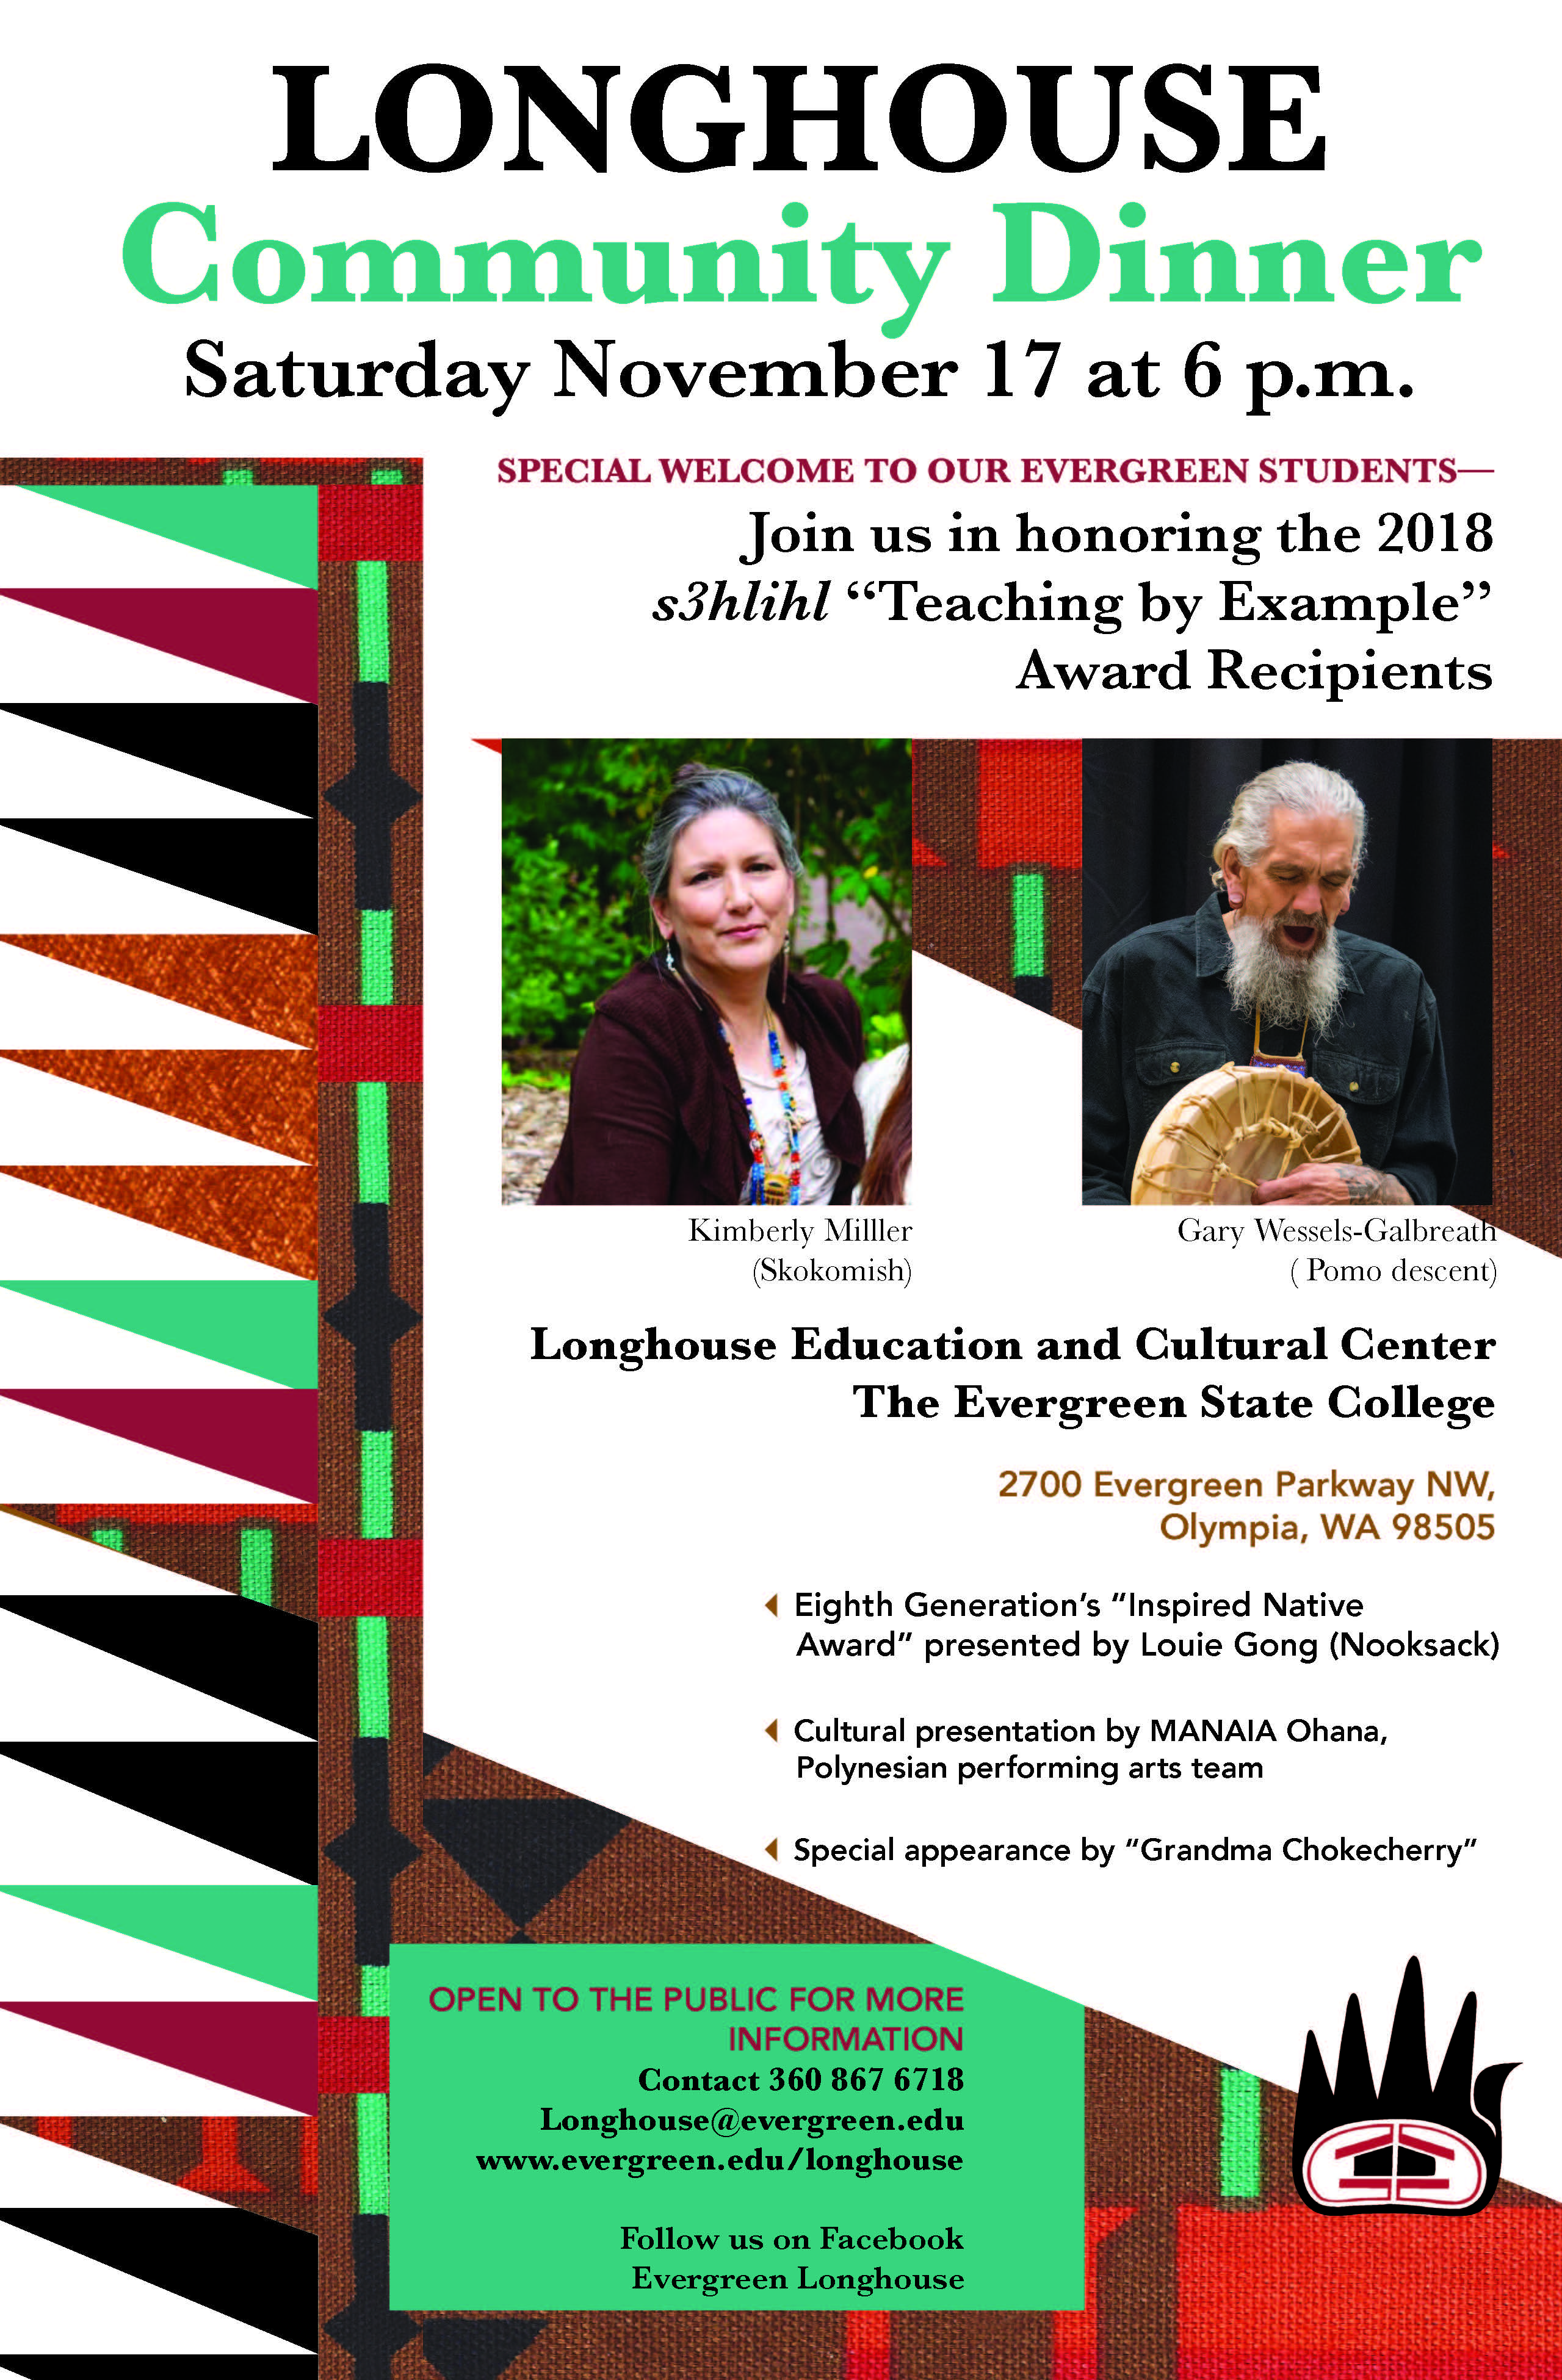 Longhouse 2018 Community Dinner flyer (November 17 at 6 p.m.)